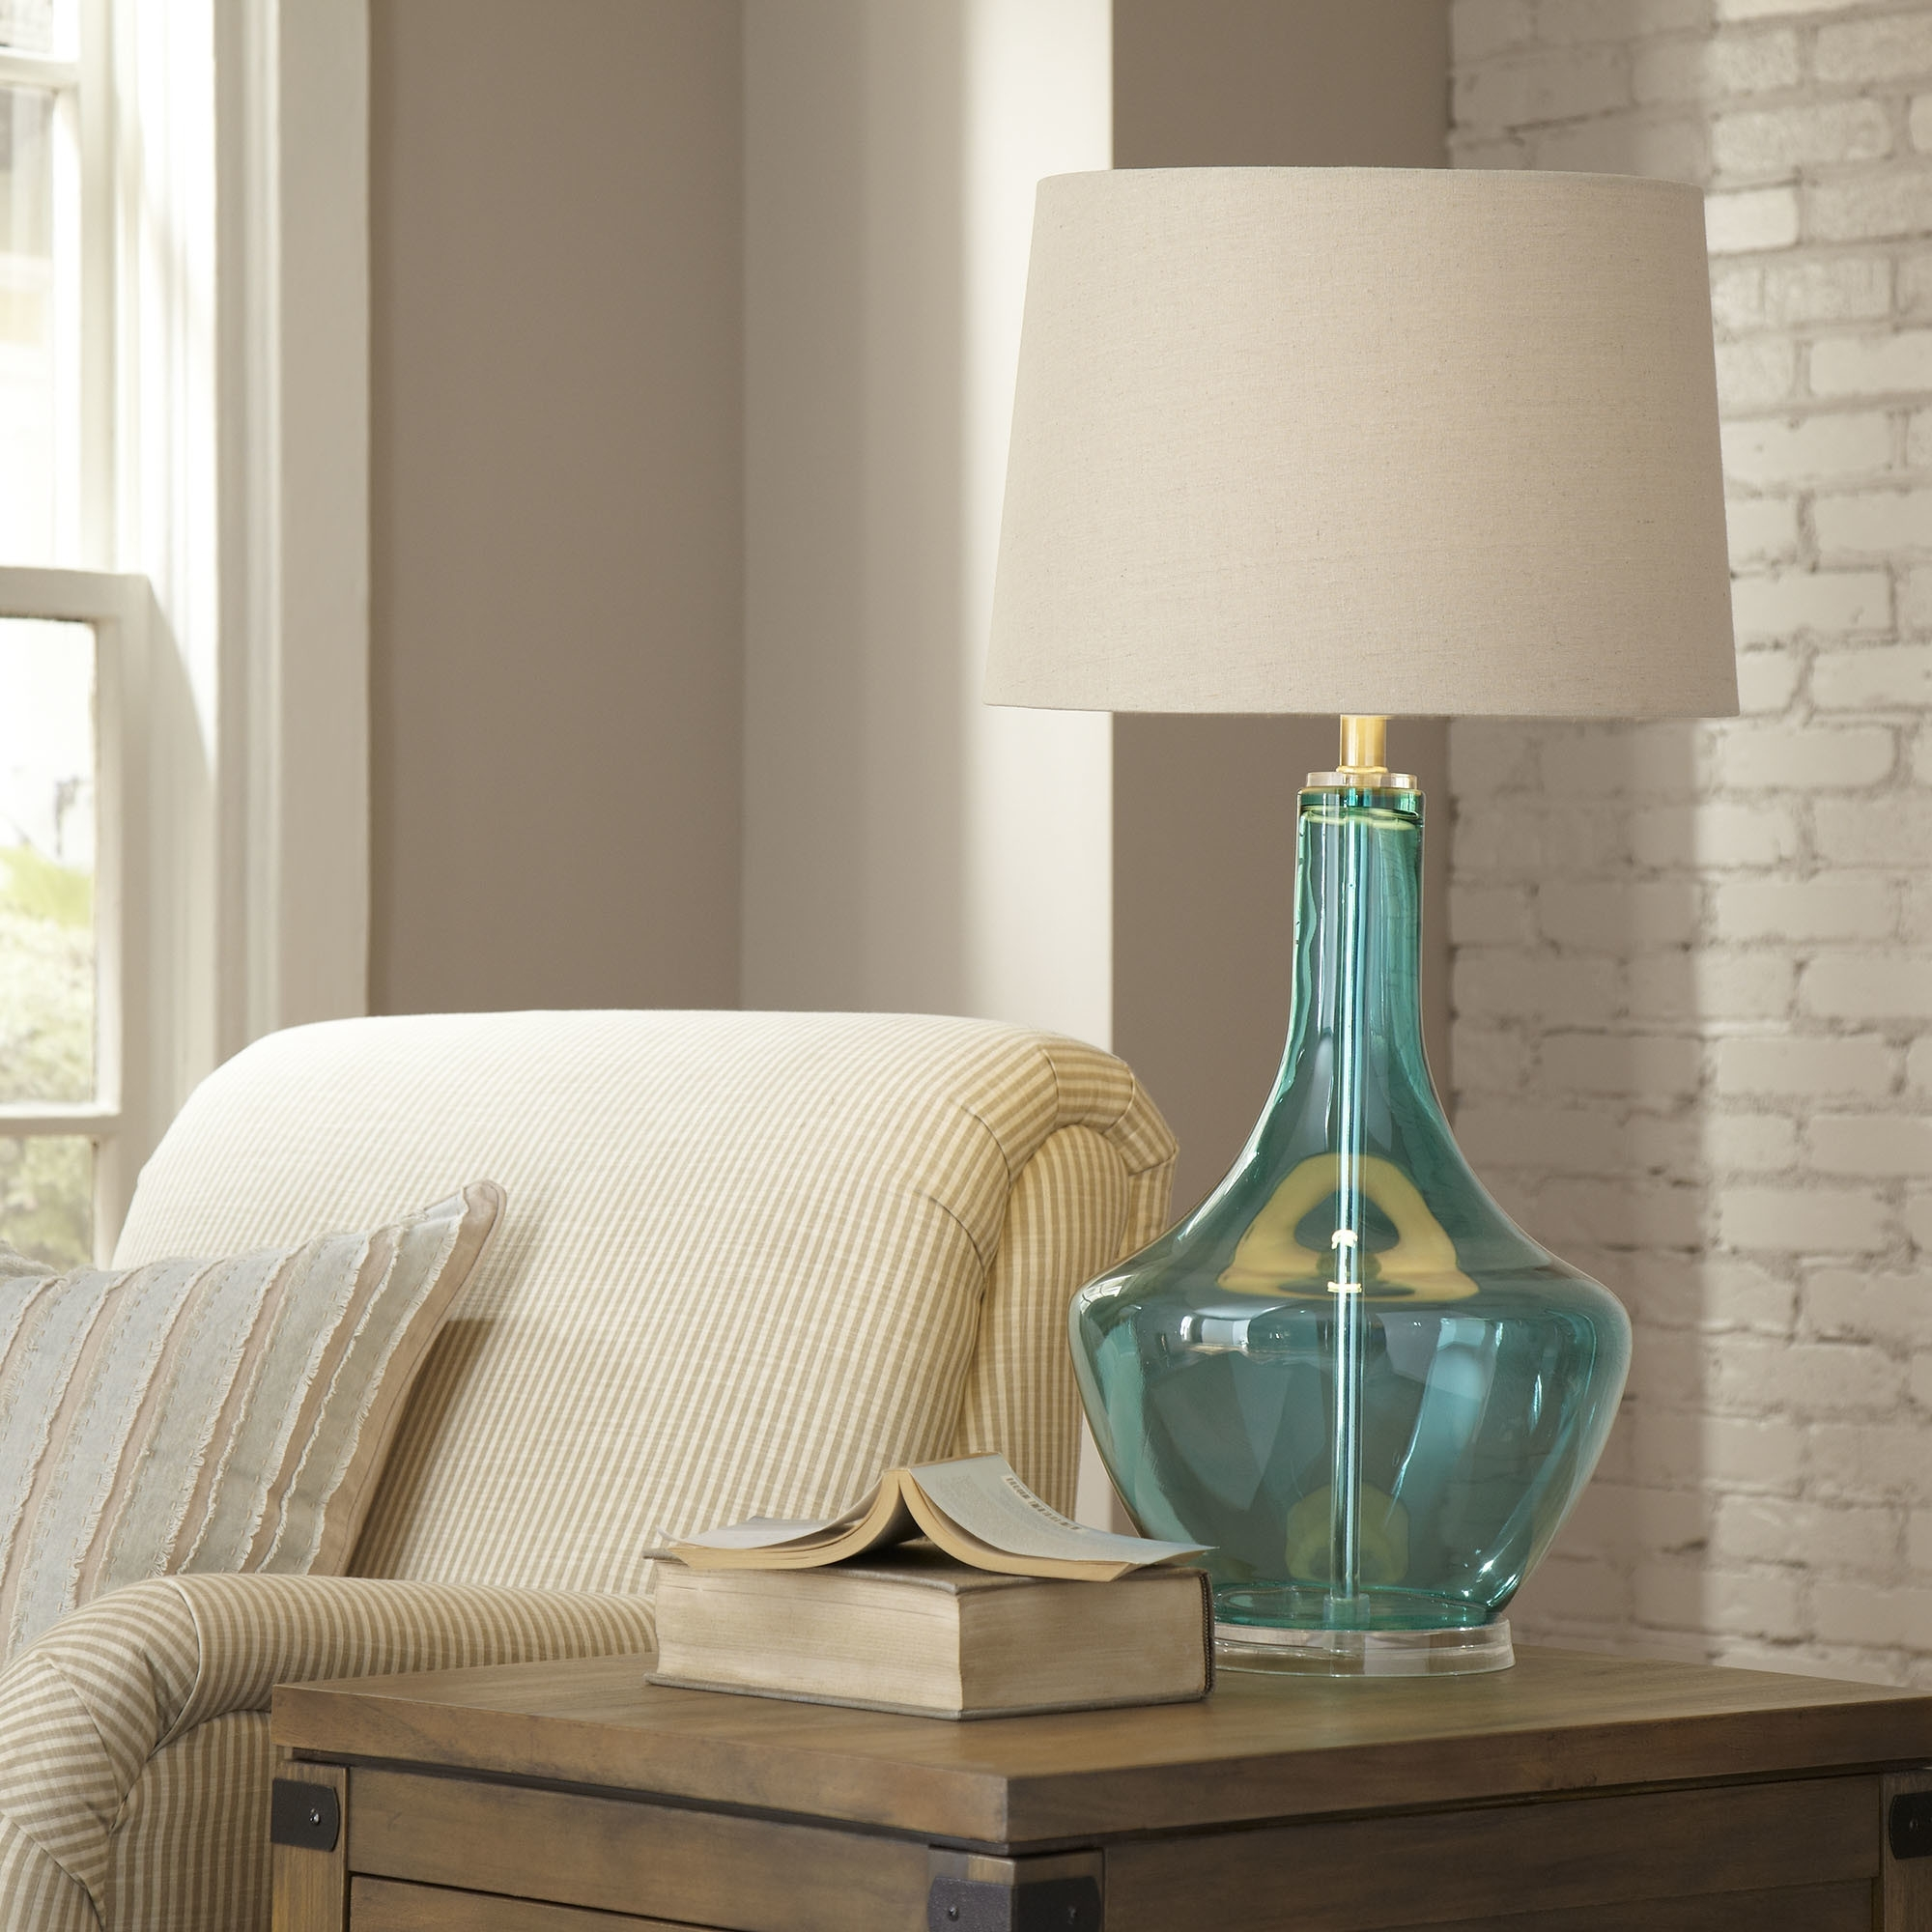 Inspiration about Top 53 Great Blue Table Lamp Touch Bedside Lamps Silver Glass Shades Intended For Coastal Living Room Table Lamps (#6 of 15)